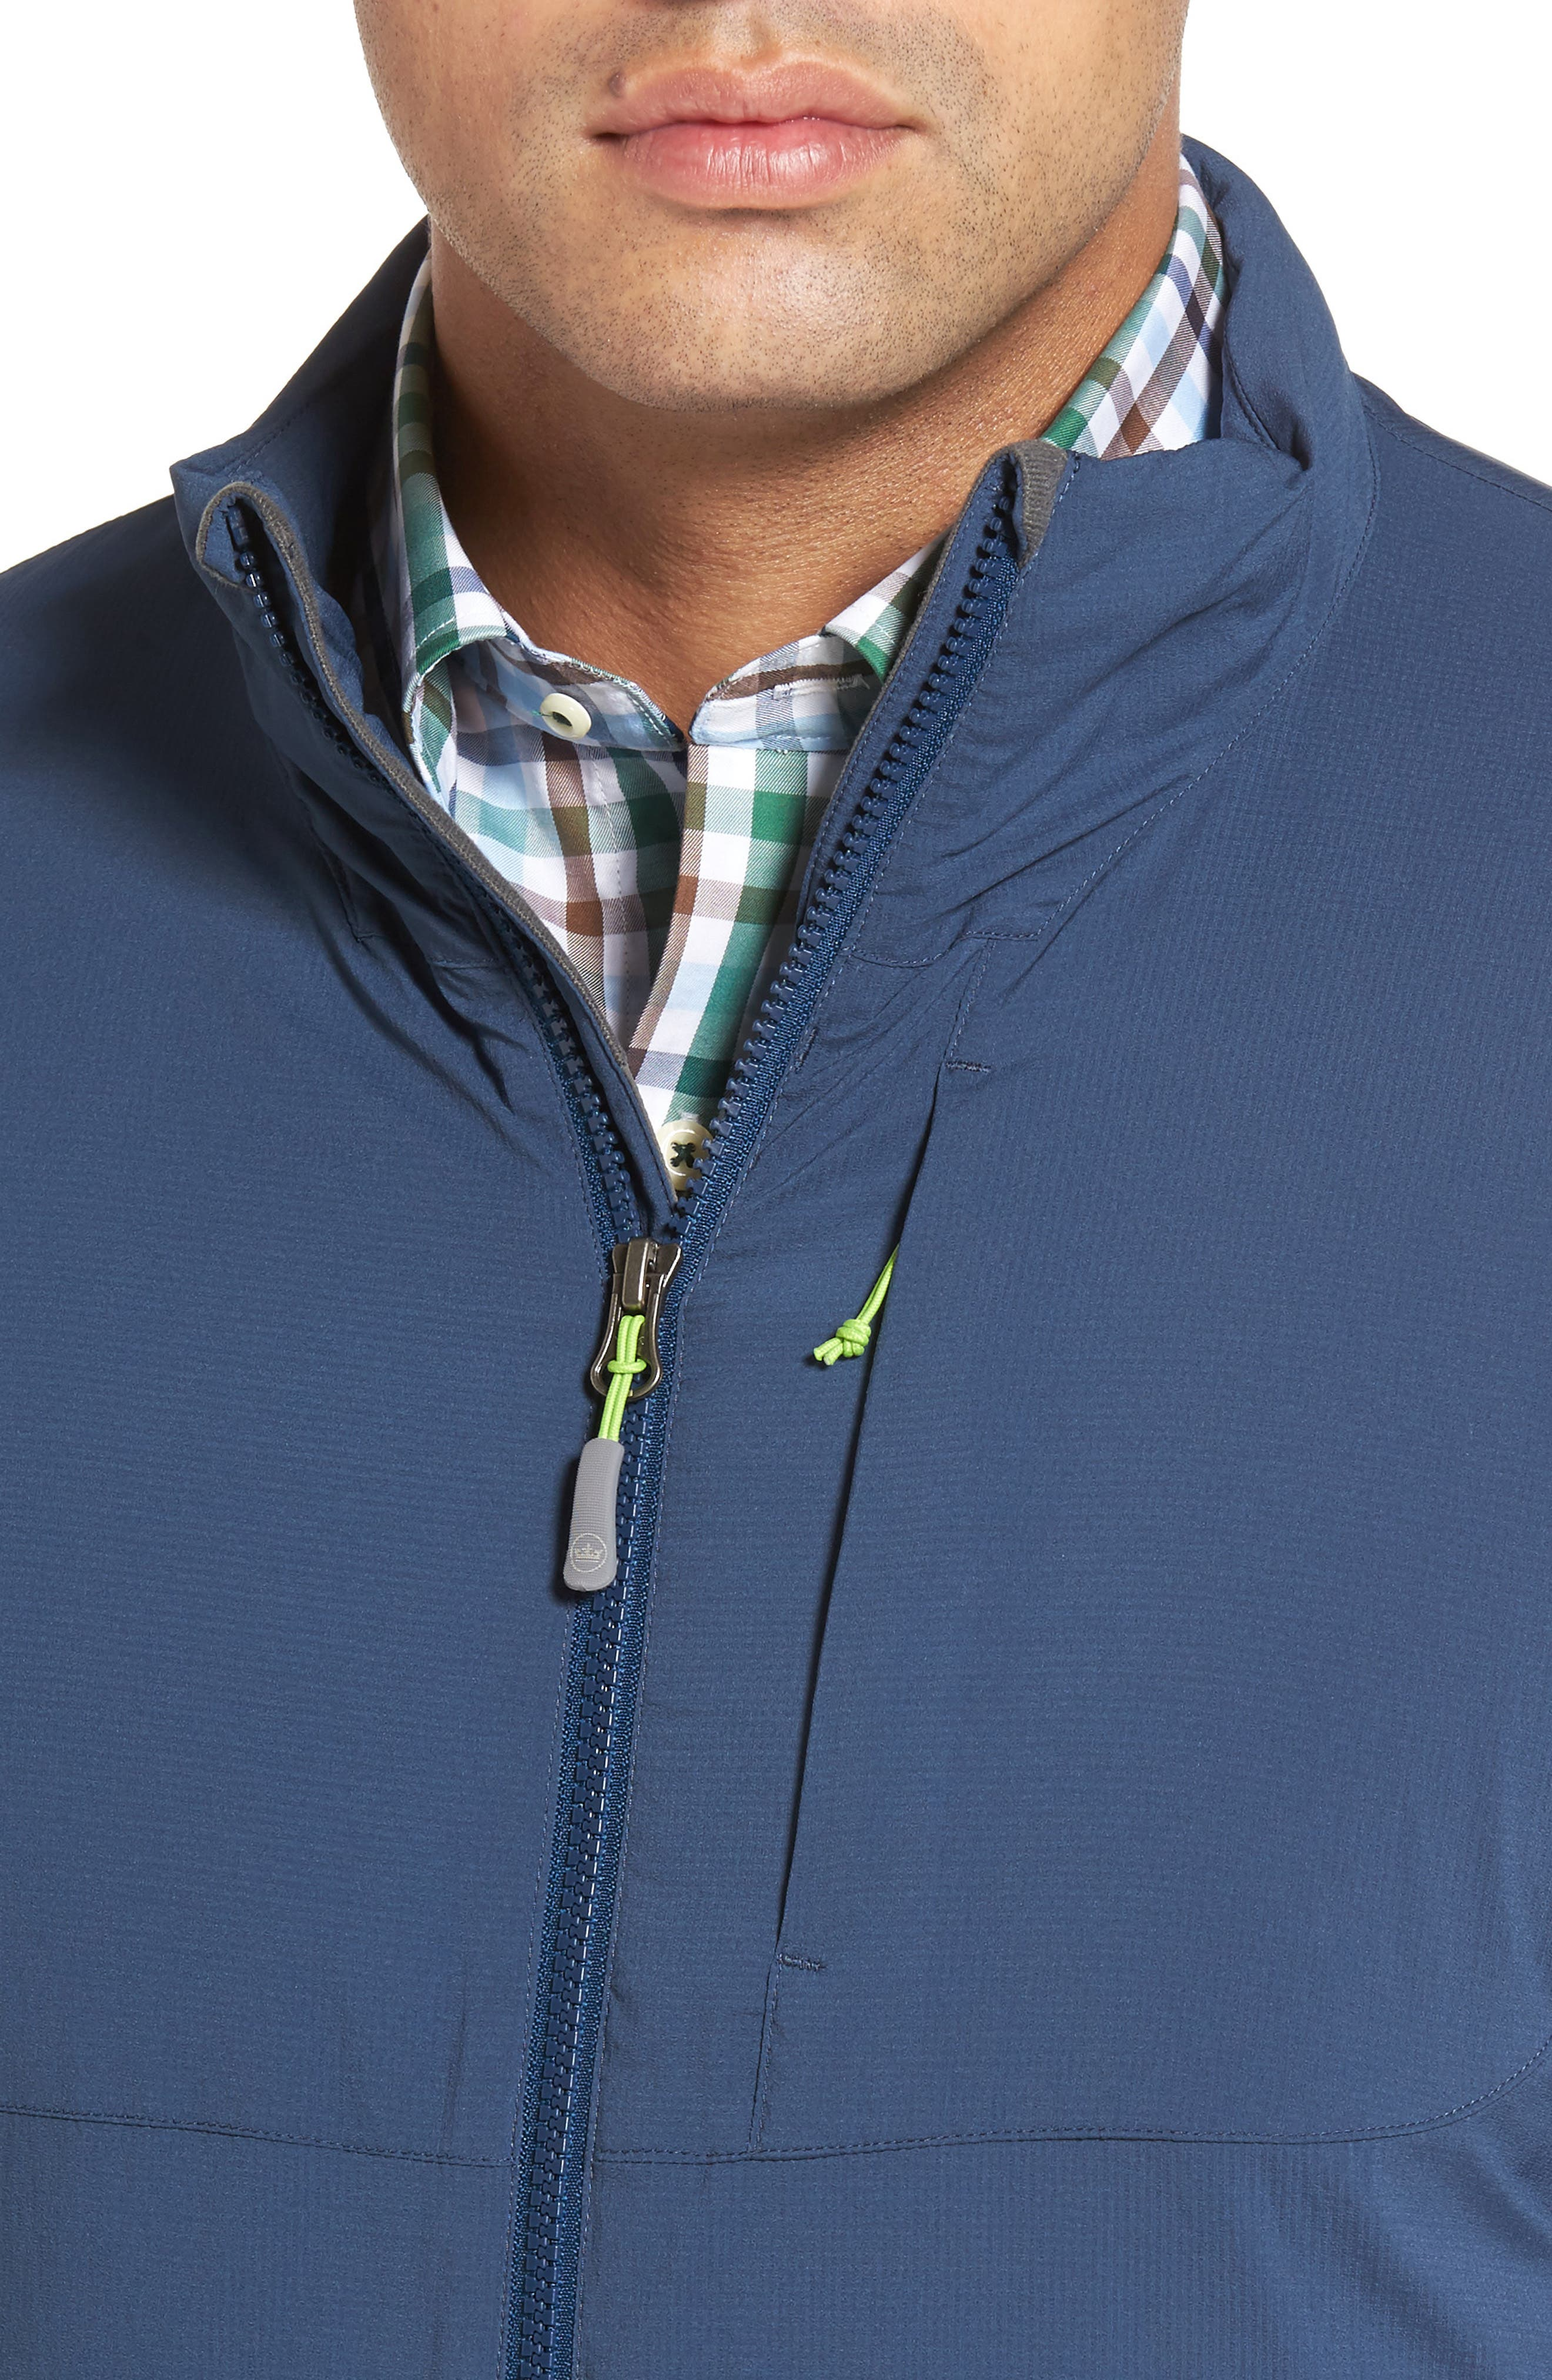 Bozeman Stretch Puffer Jacket,                             Alternate thumbnail 4, color,